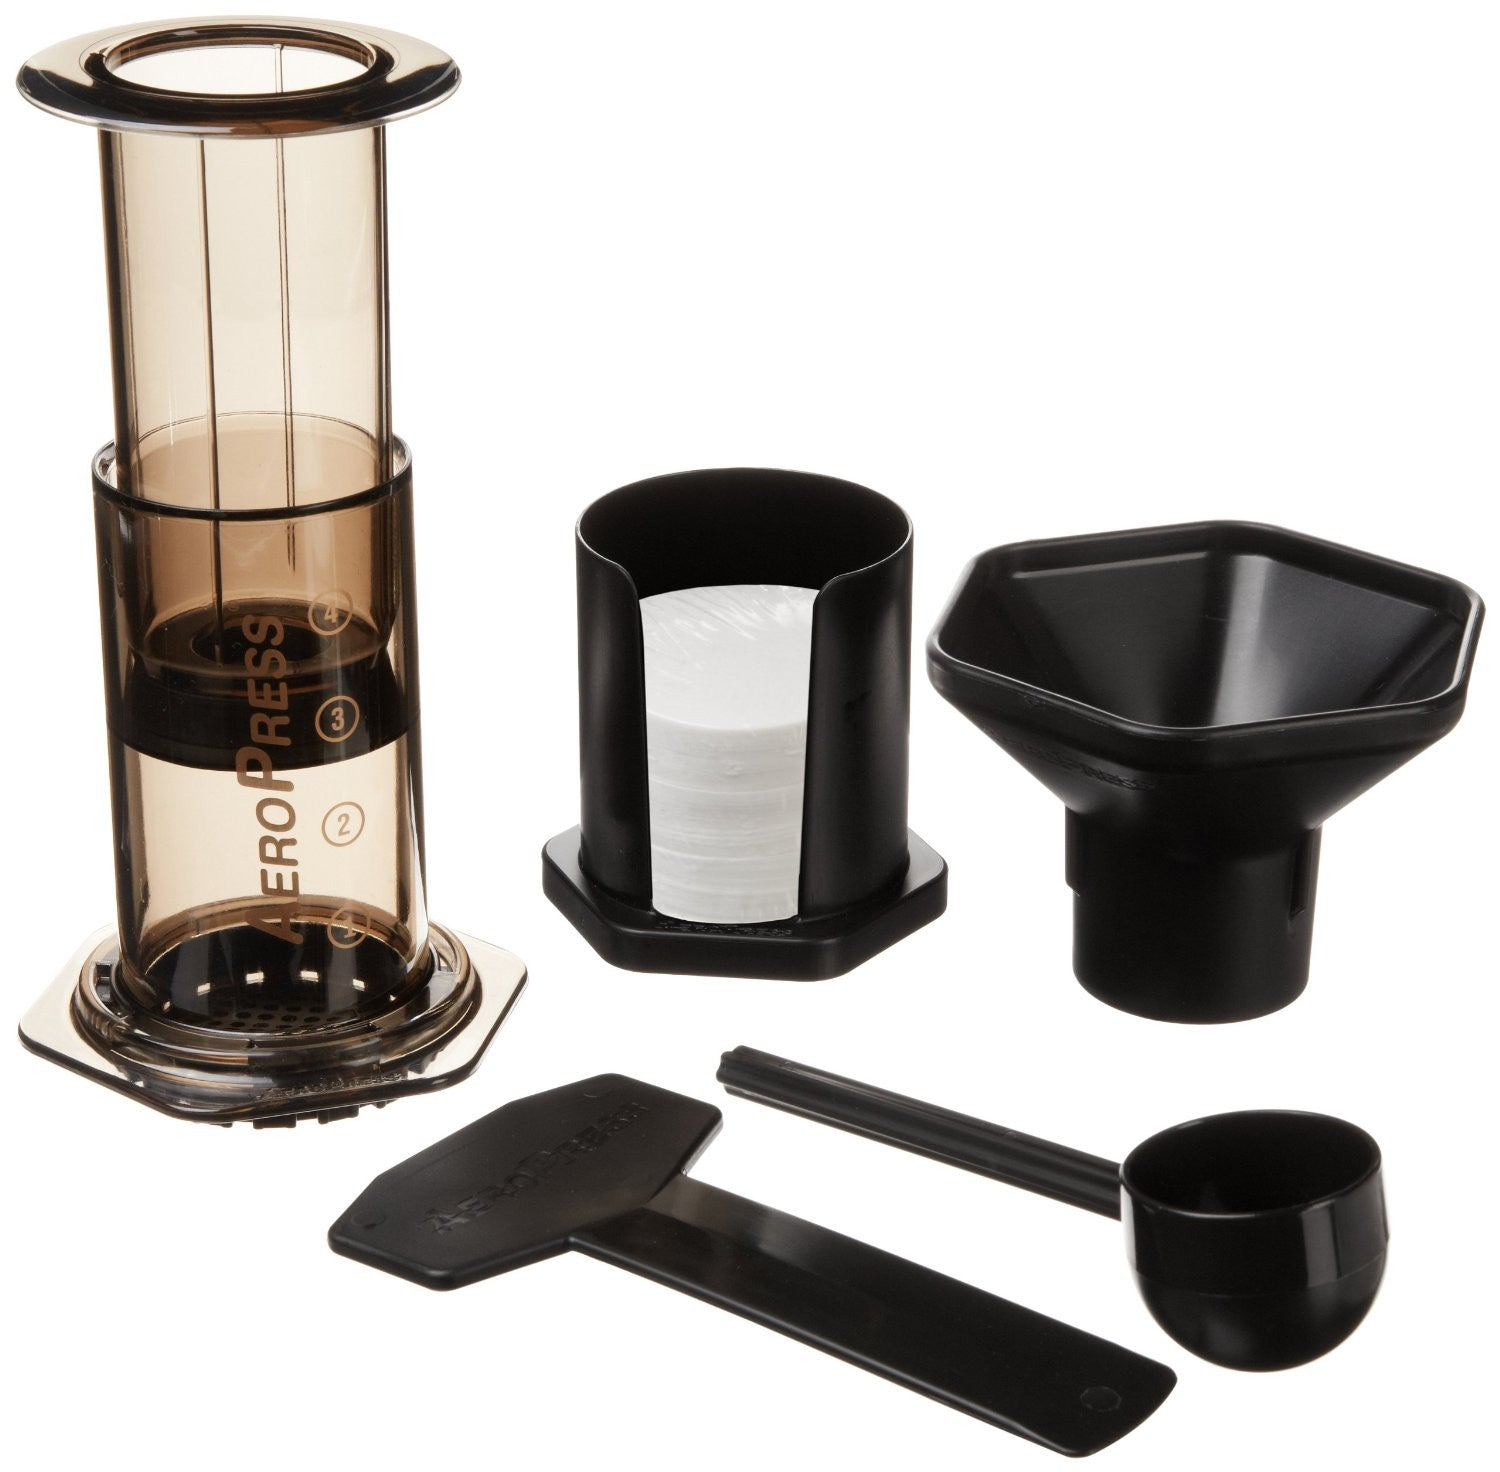 Aeropress Coffee and Espresso Maker Components